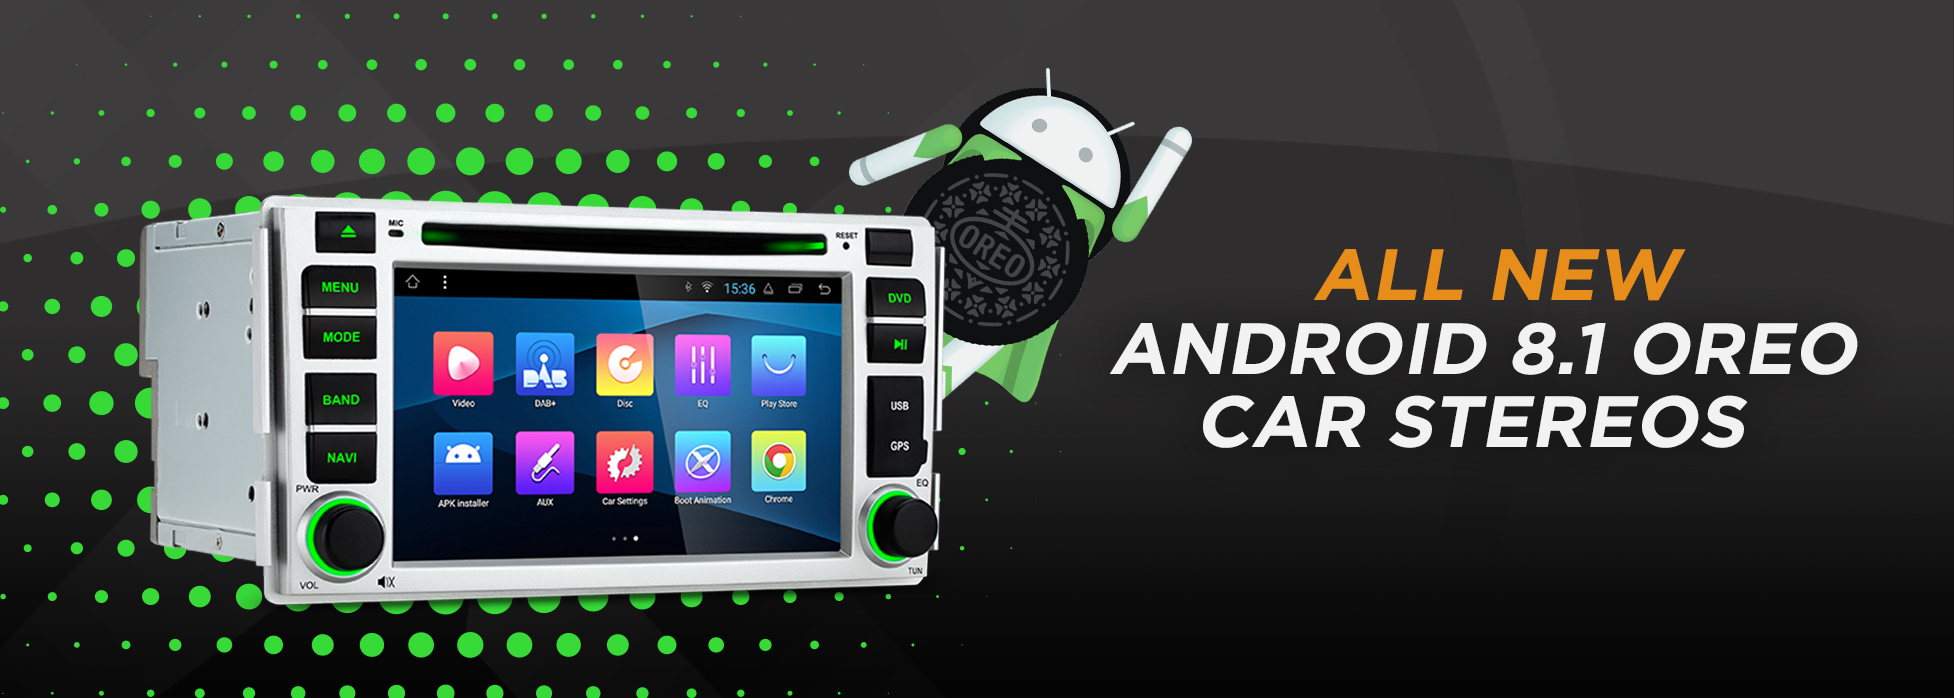 new android 8.1 car stereos banner